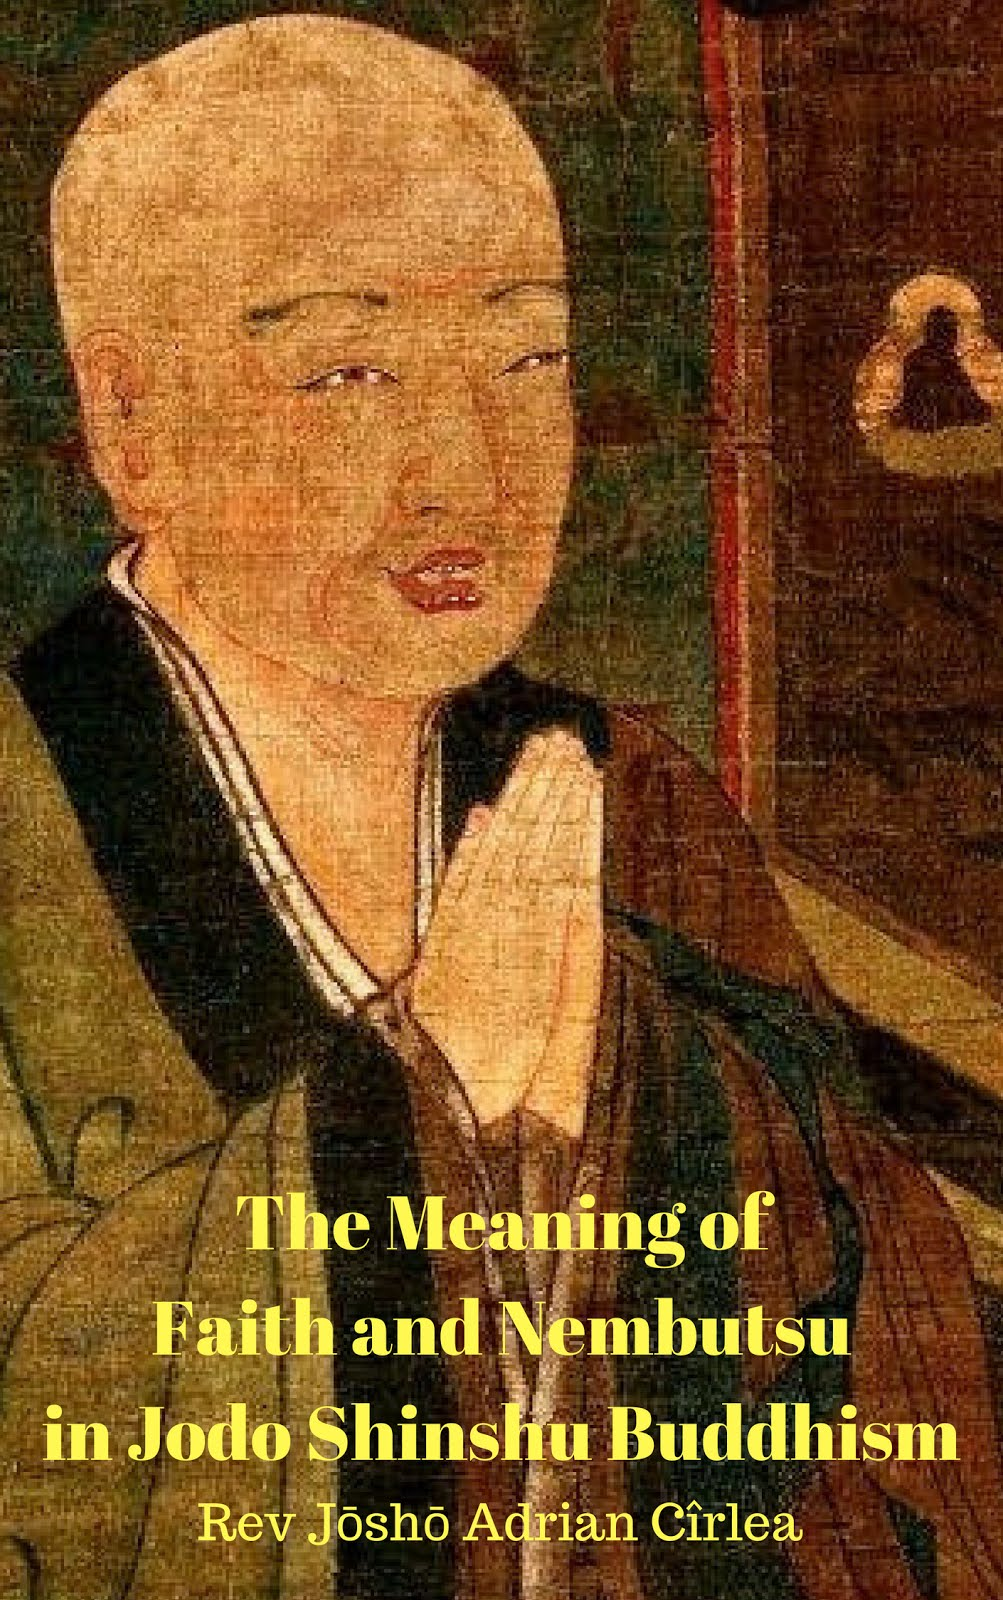 NEW! THE MEANING OF FAITH AND NEMBUTSU IN JODO SHINSHU BUDDHISM